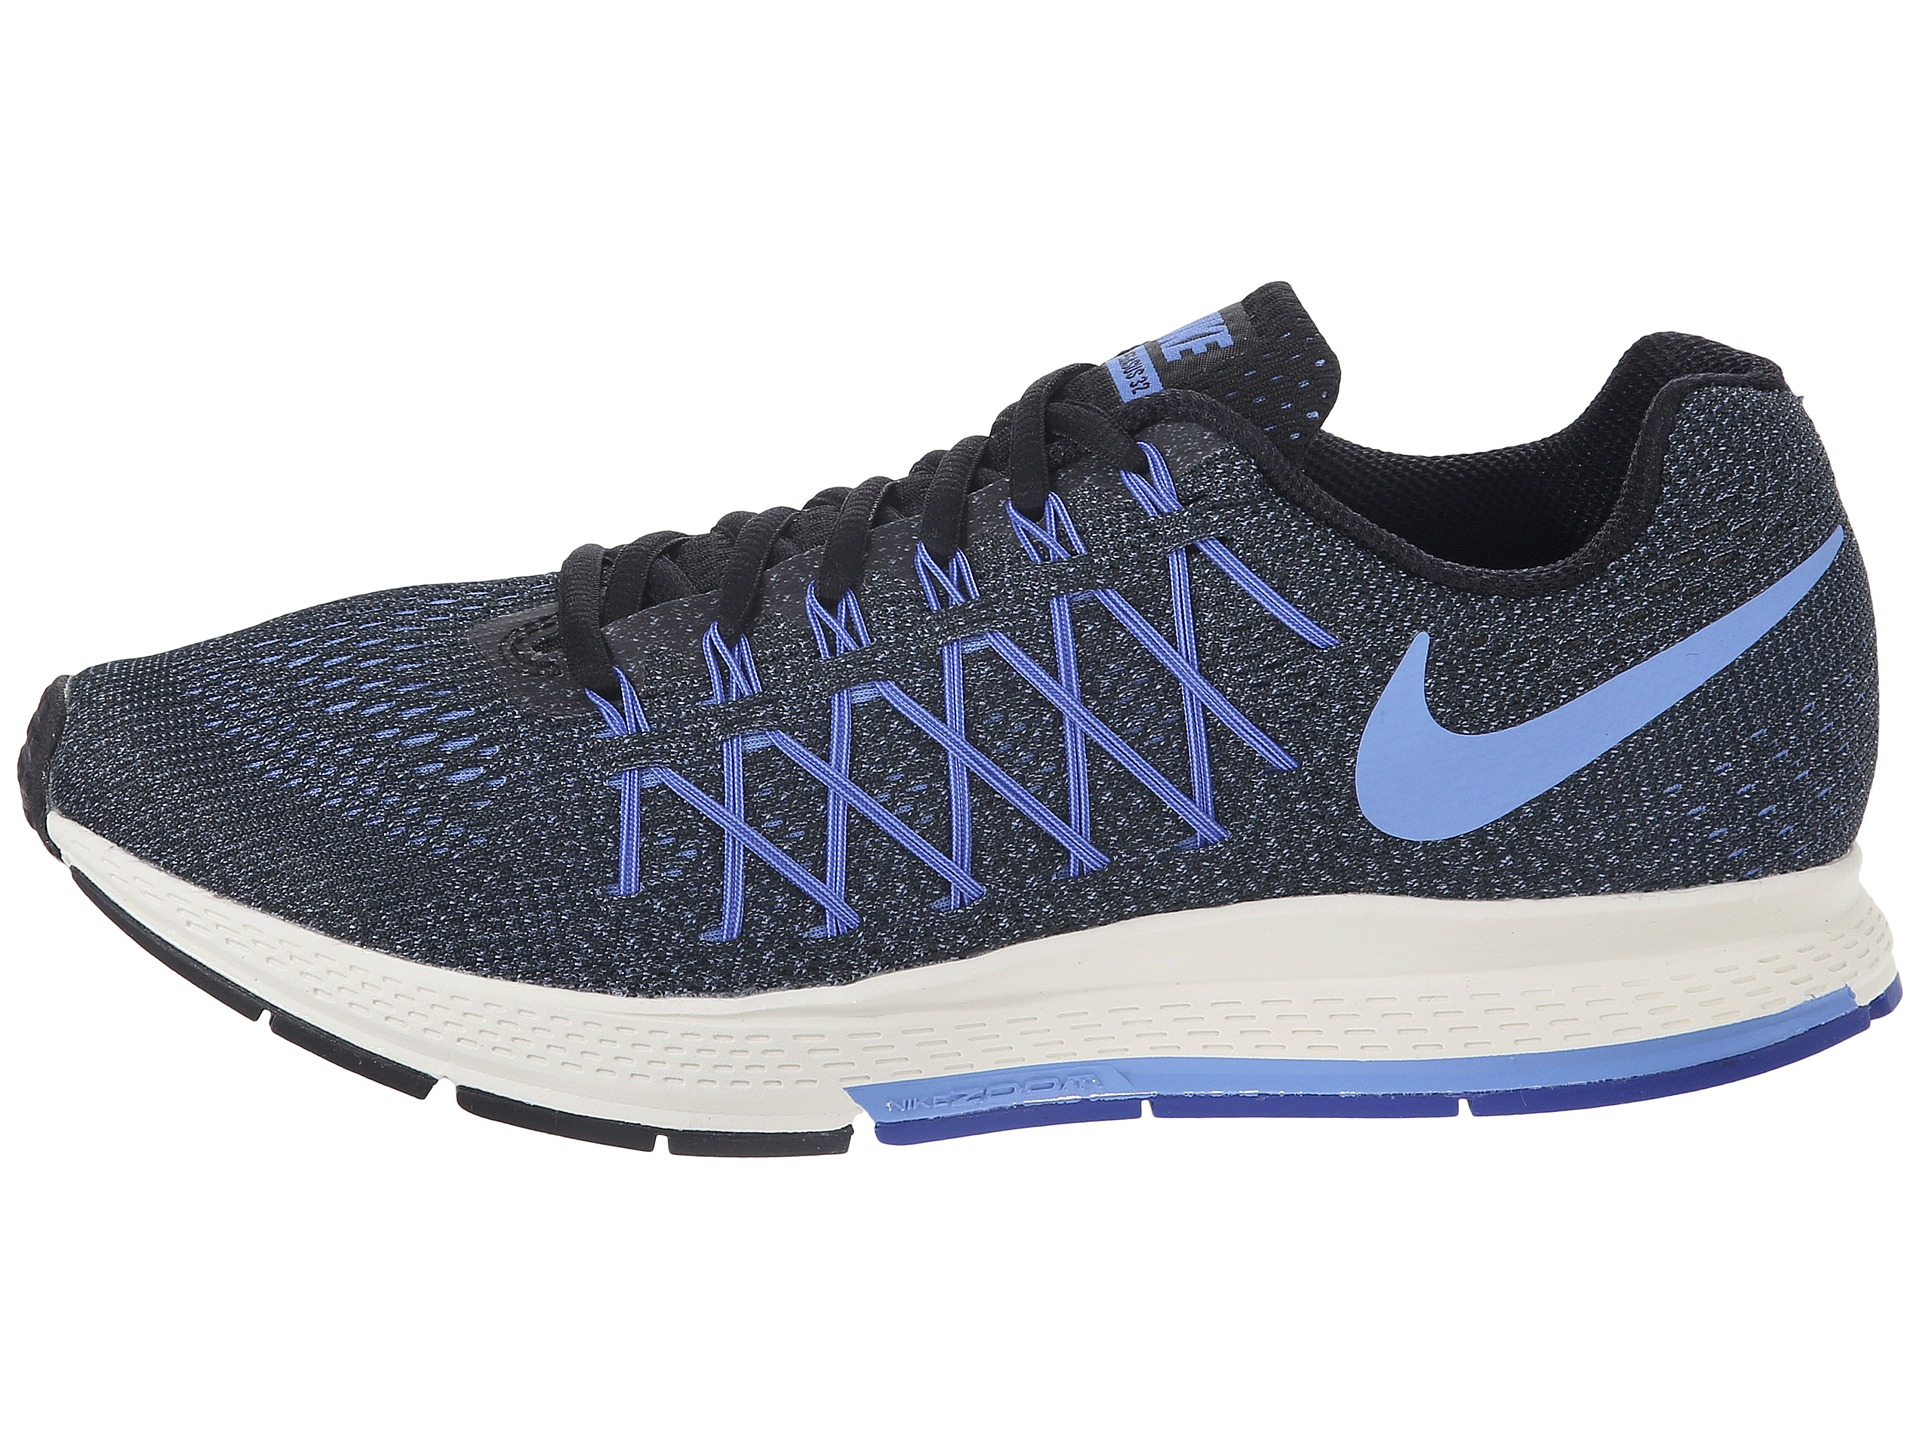 premium selection 3bc89 f3b6a ... new zealand lyst nike air zoom pegasus 32 womens running shoes in black  0fc6f 34be3